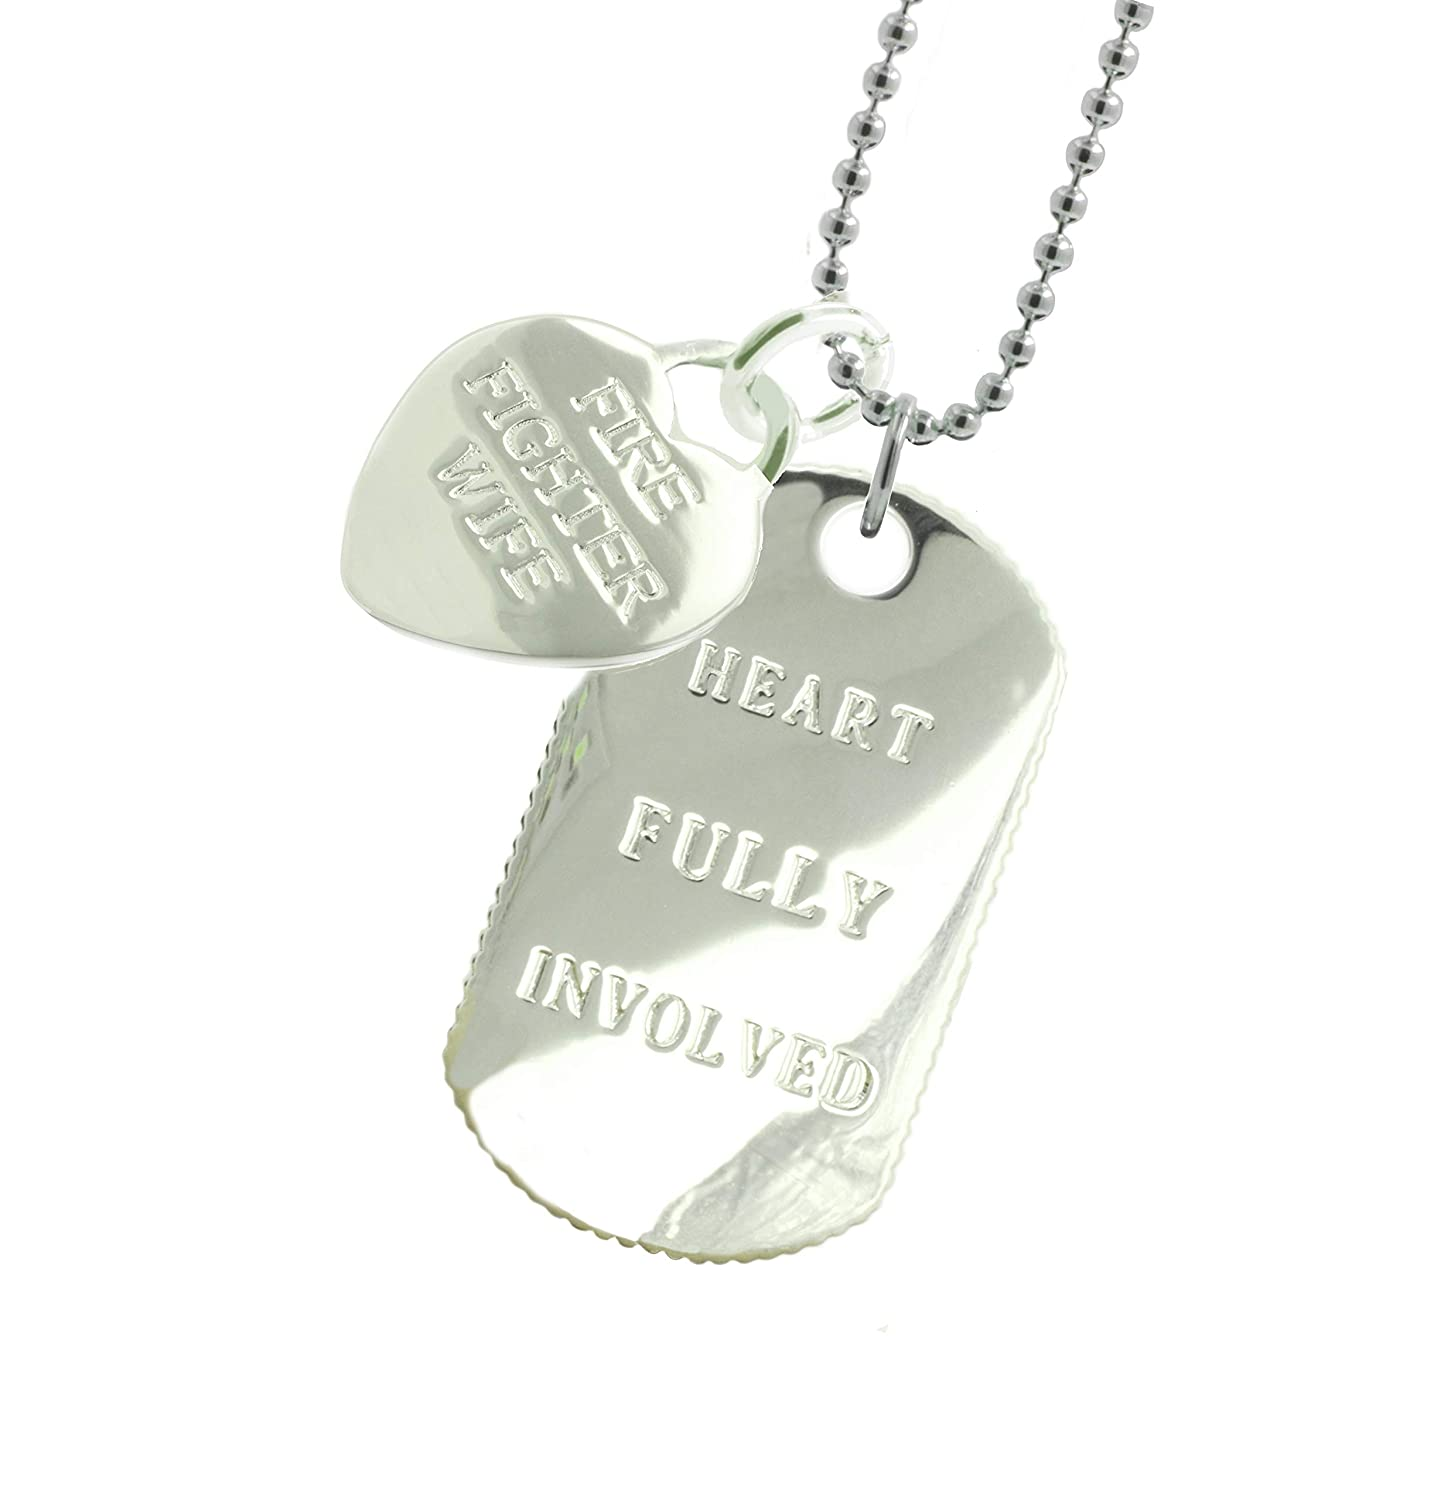 New York 925 & Co. Plated Firefighter Wife Dog Tag